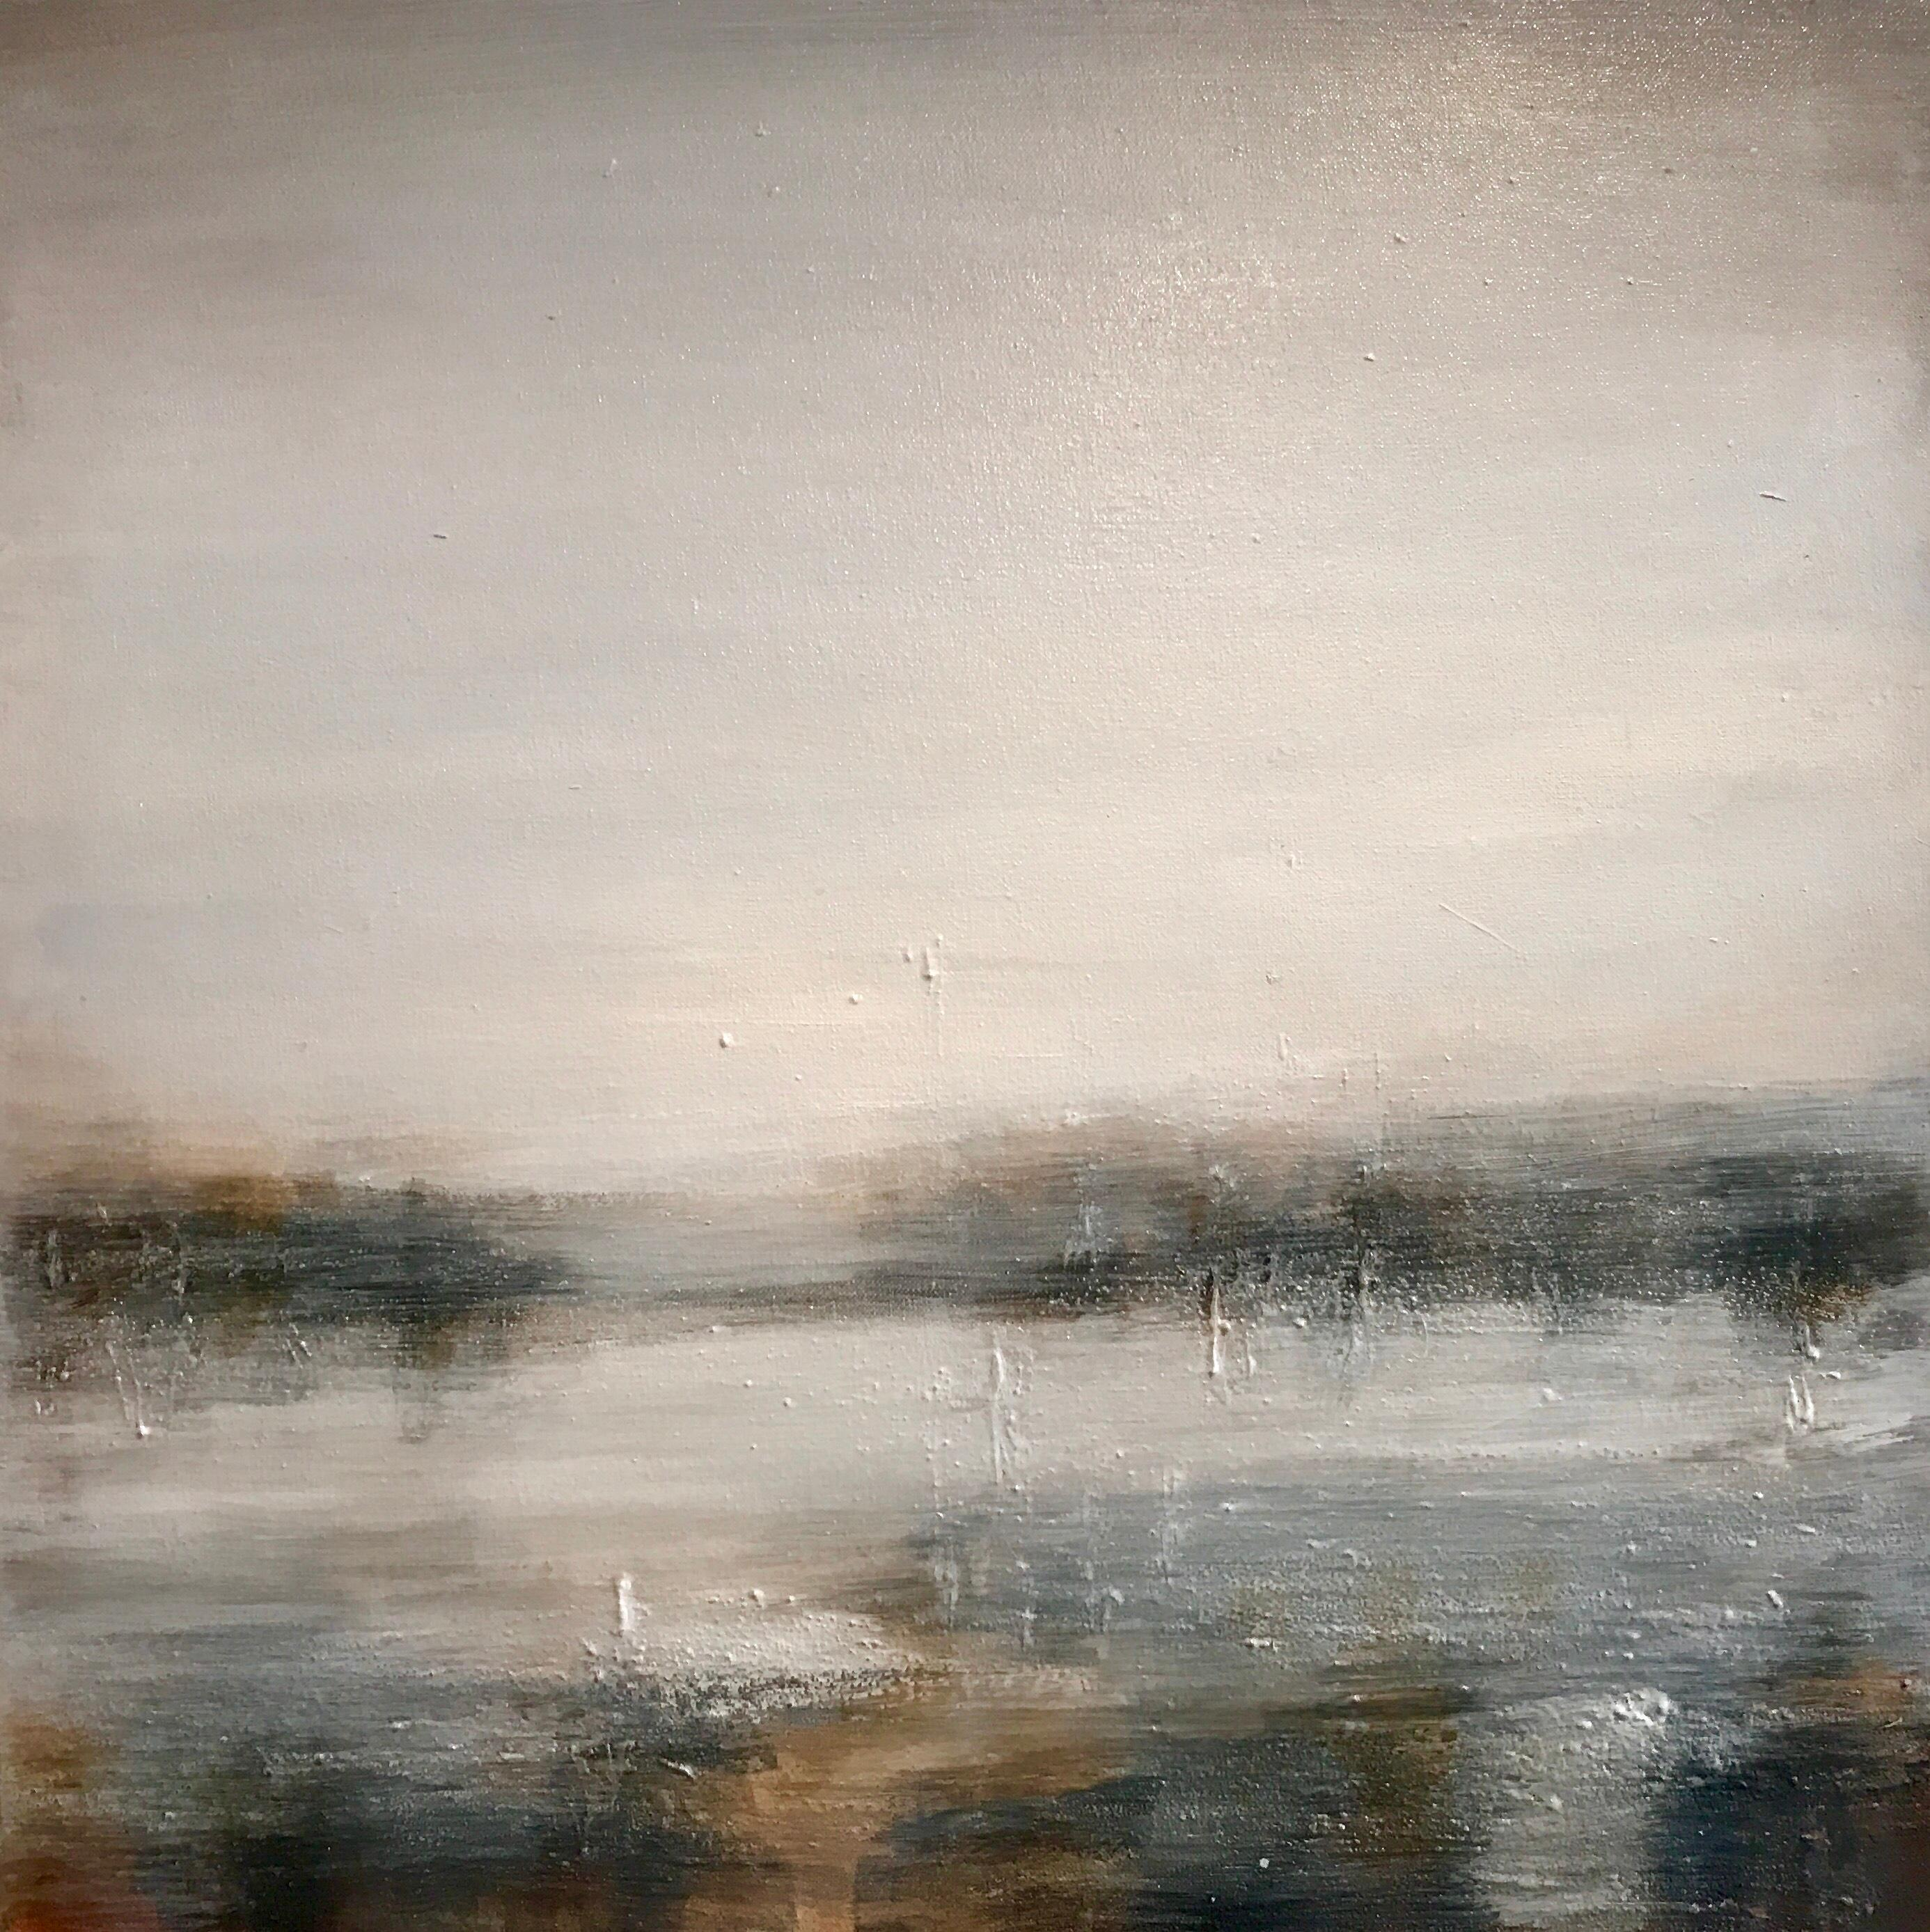 Hazy Waters - A Contemporary Landscape Painting by Clodagh Meiklejohn